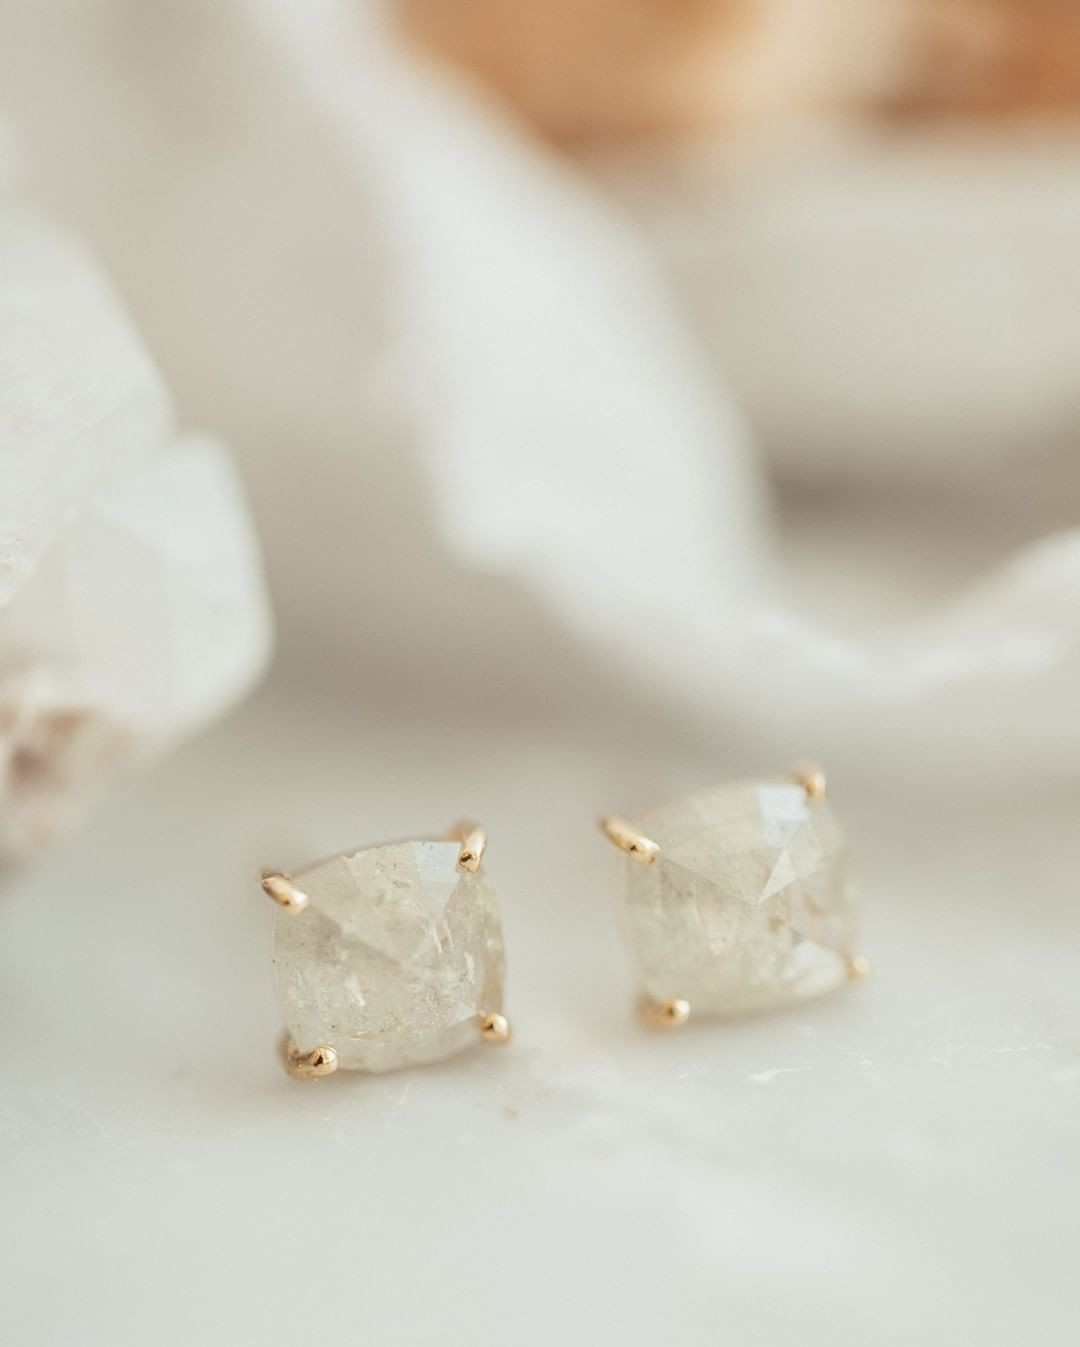 Currently crushing on these light grey rough diamond studs in 14k yellow gold. Available online and at our Tennyson street location